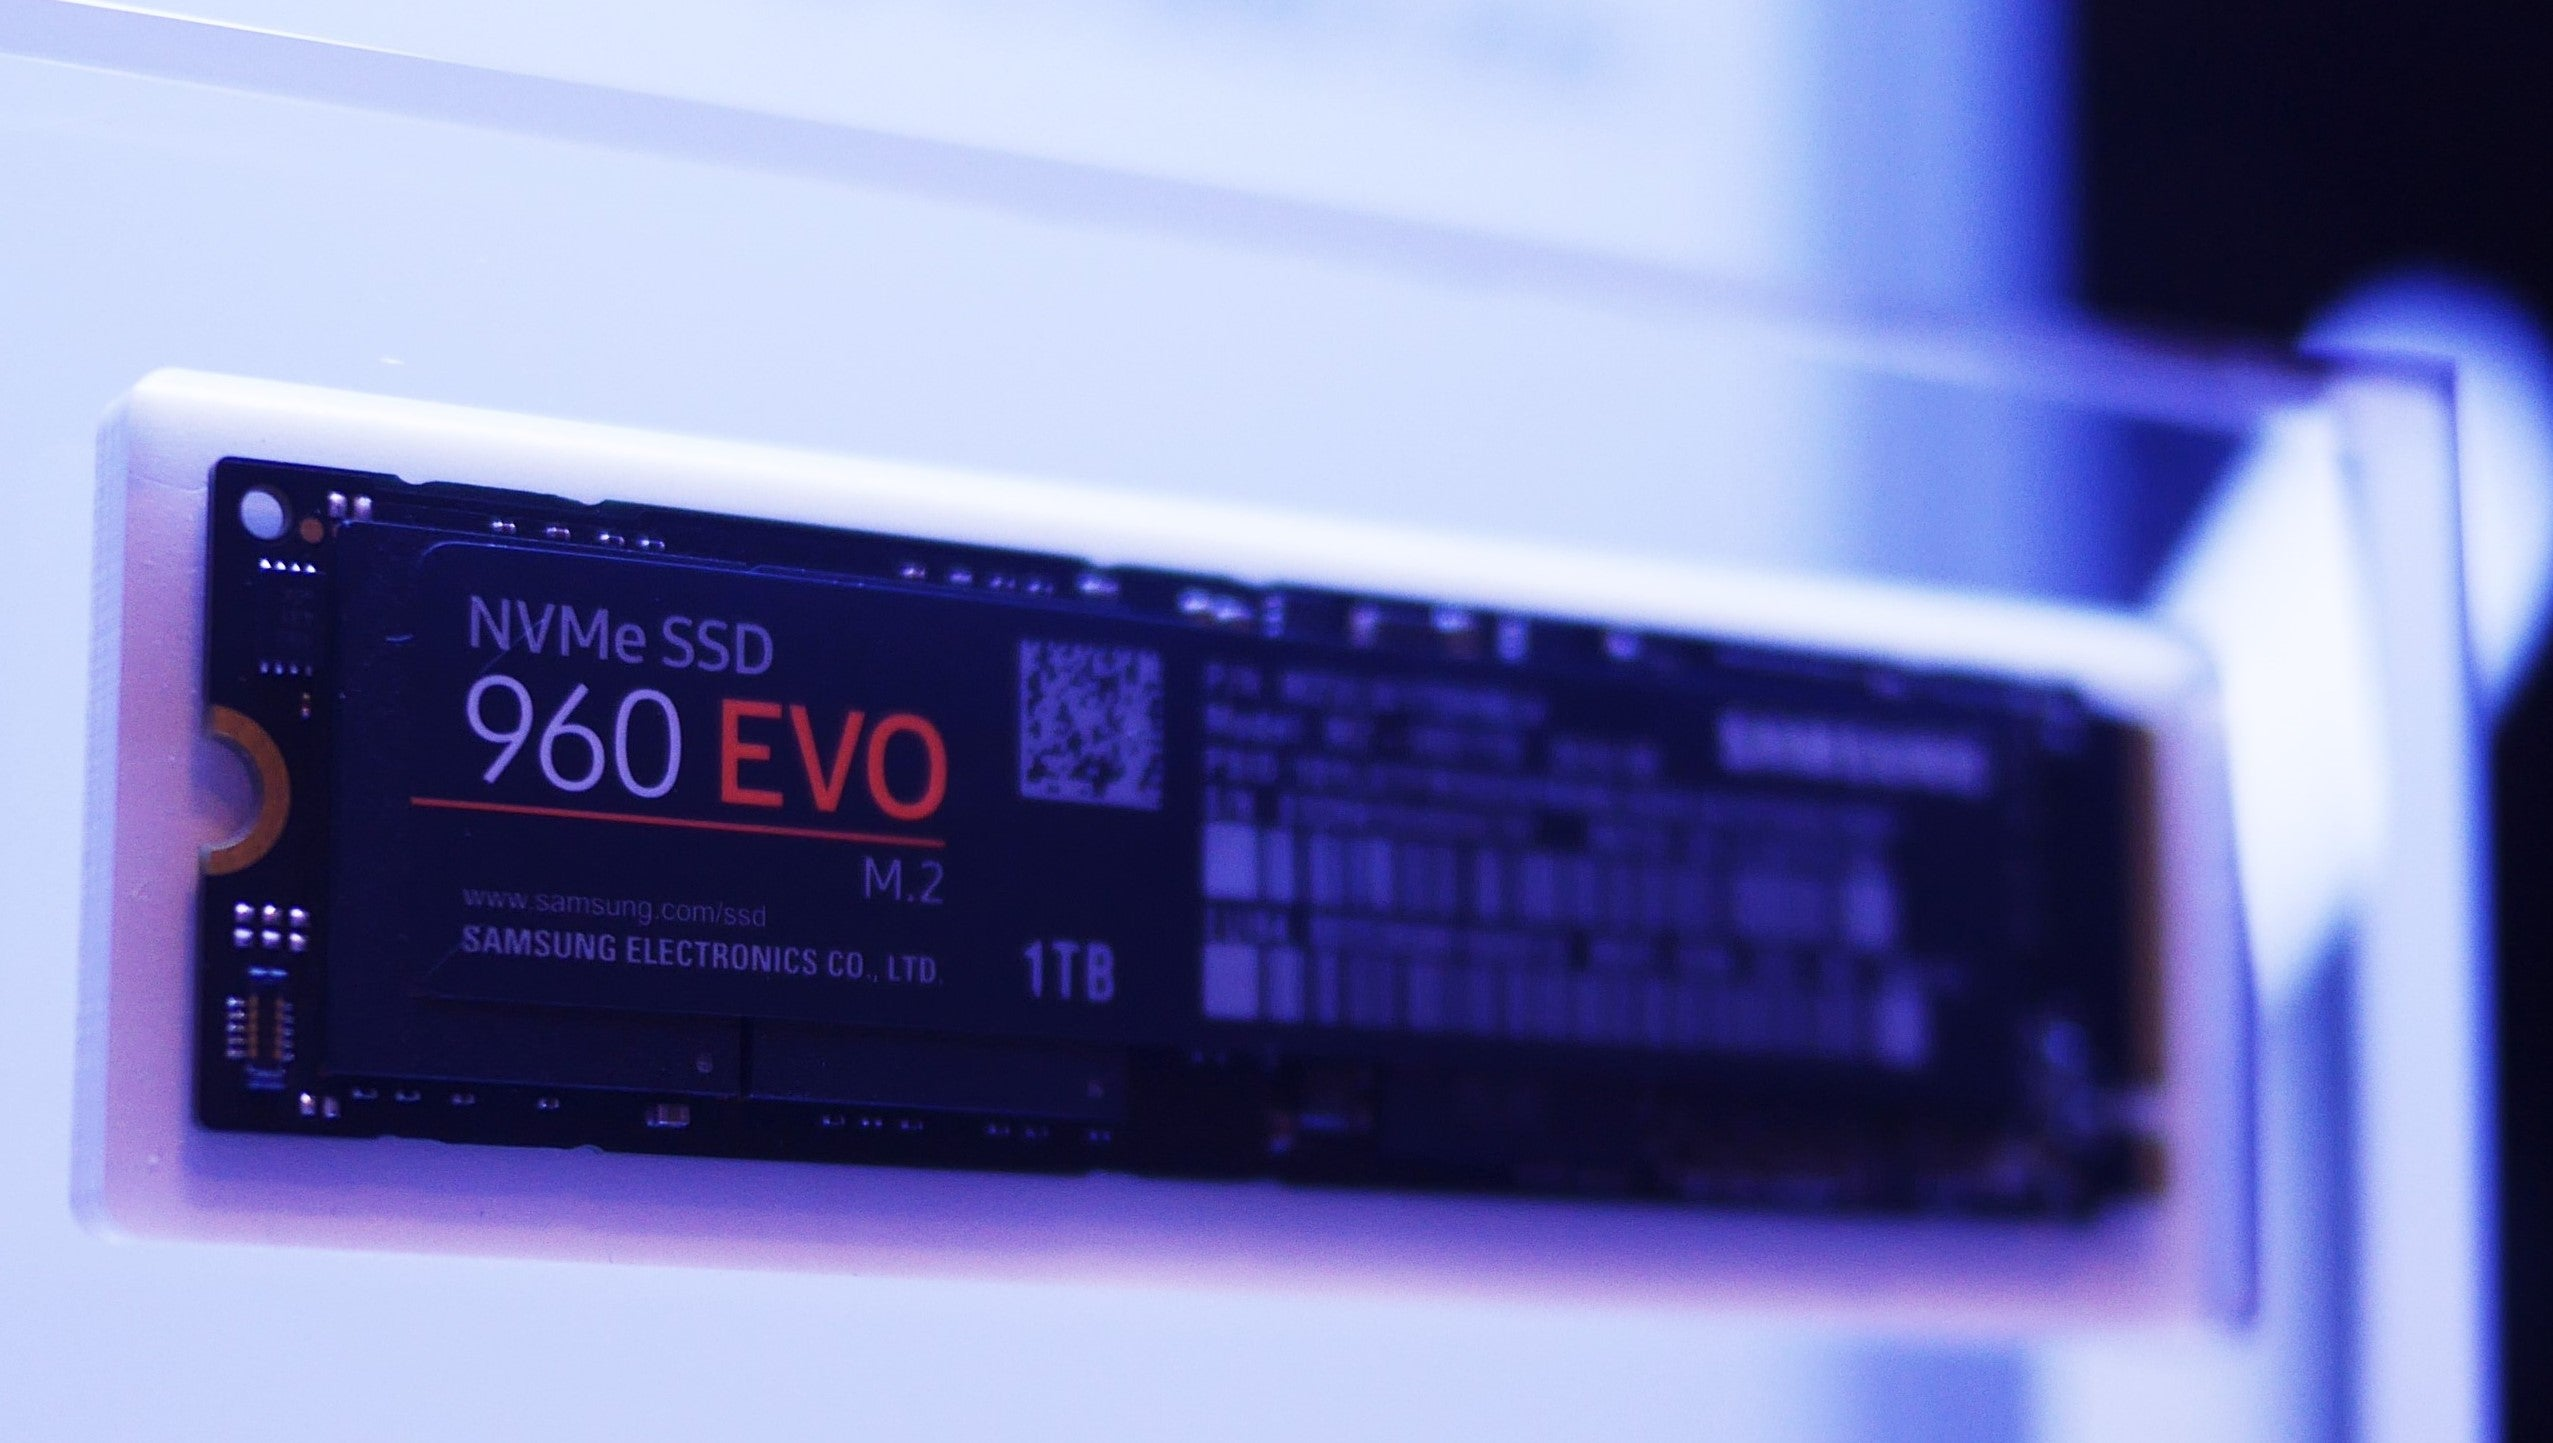 Samsung Unleashes 960 Pro And Evo M2 Ssds With Ridiculous Write Ssd Nvme 250gb Speeds Trusted Reviews